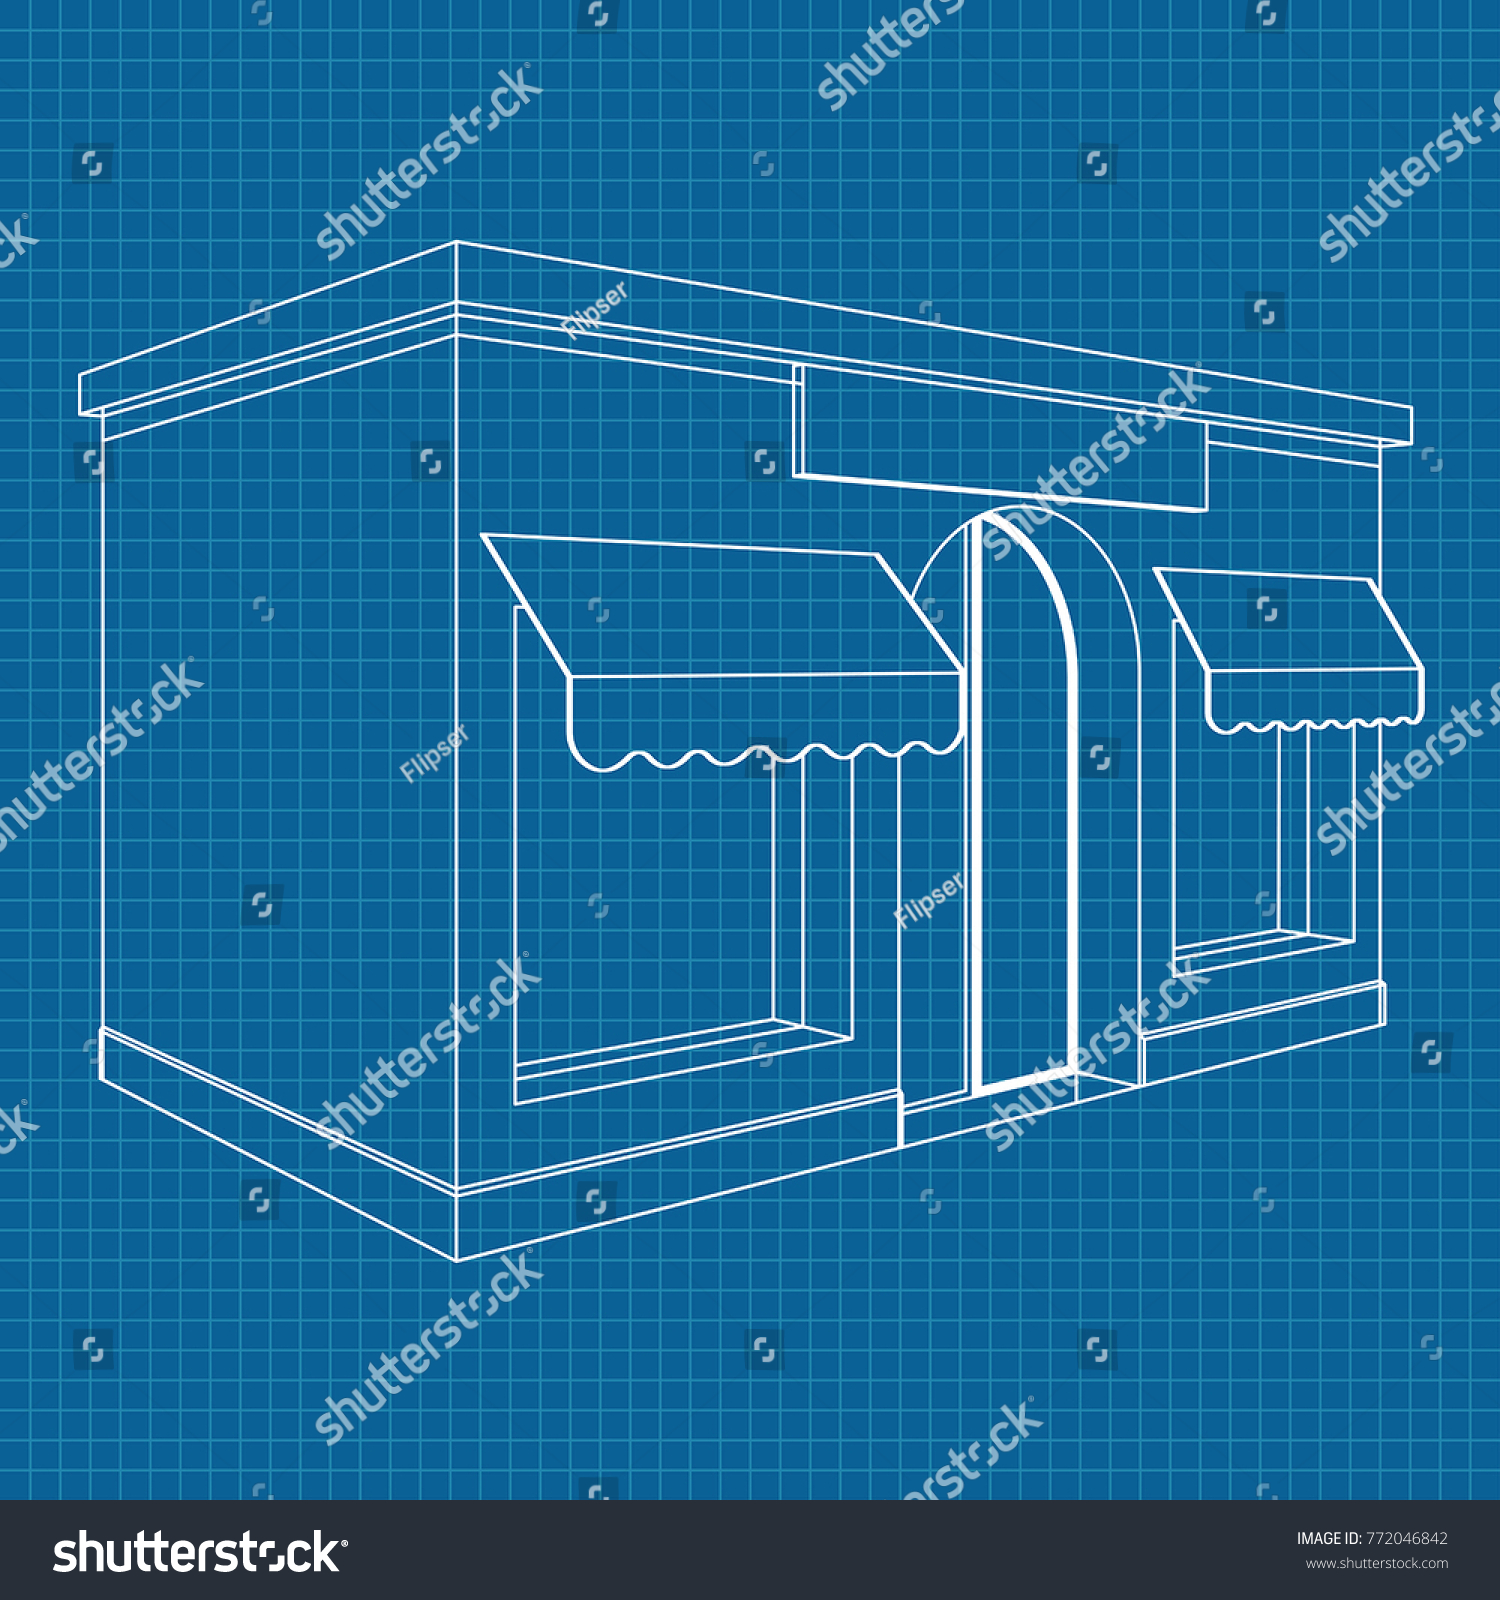 Store front white outline drawing on stock vector 772046842 store front white outline drawing on blueprint background vector illustration malvernweather Images